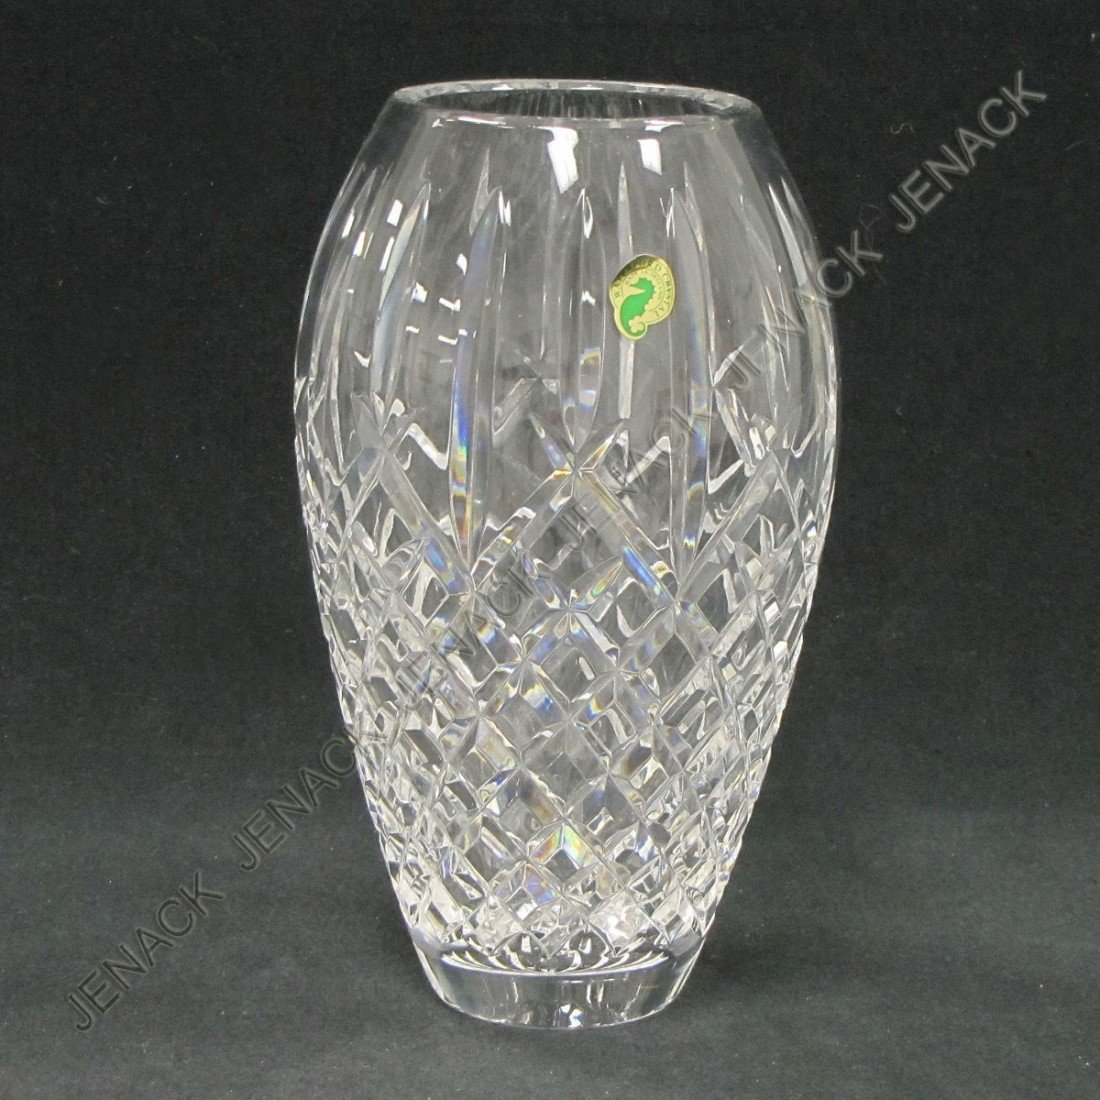 106: WATERFORD CRYSTAL VASE WITH LABEL